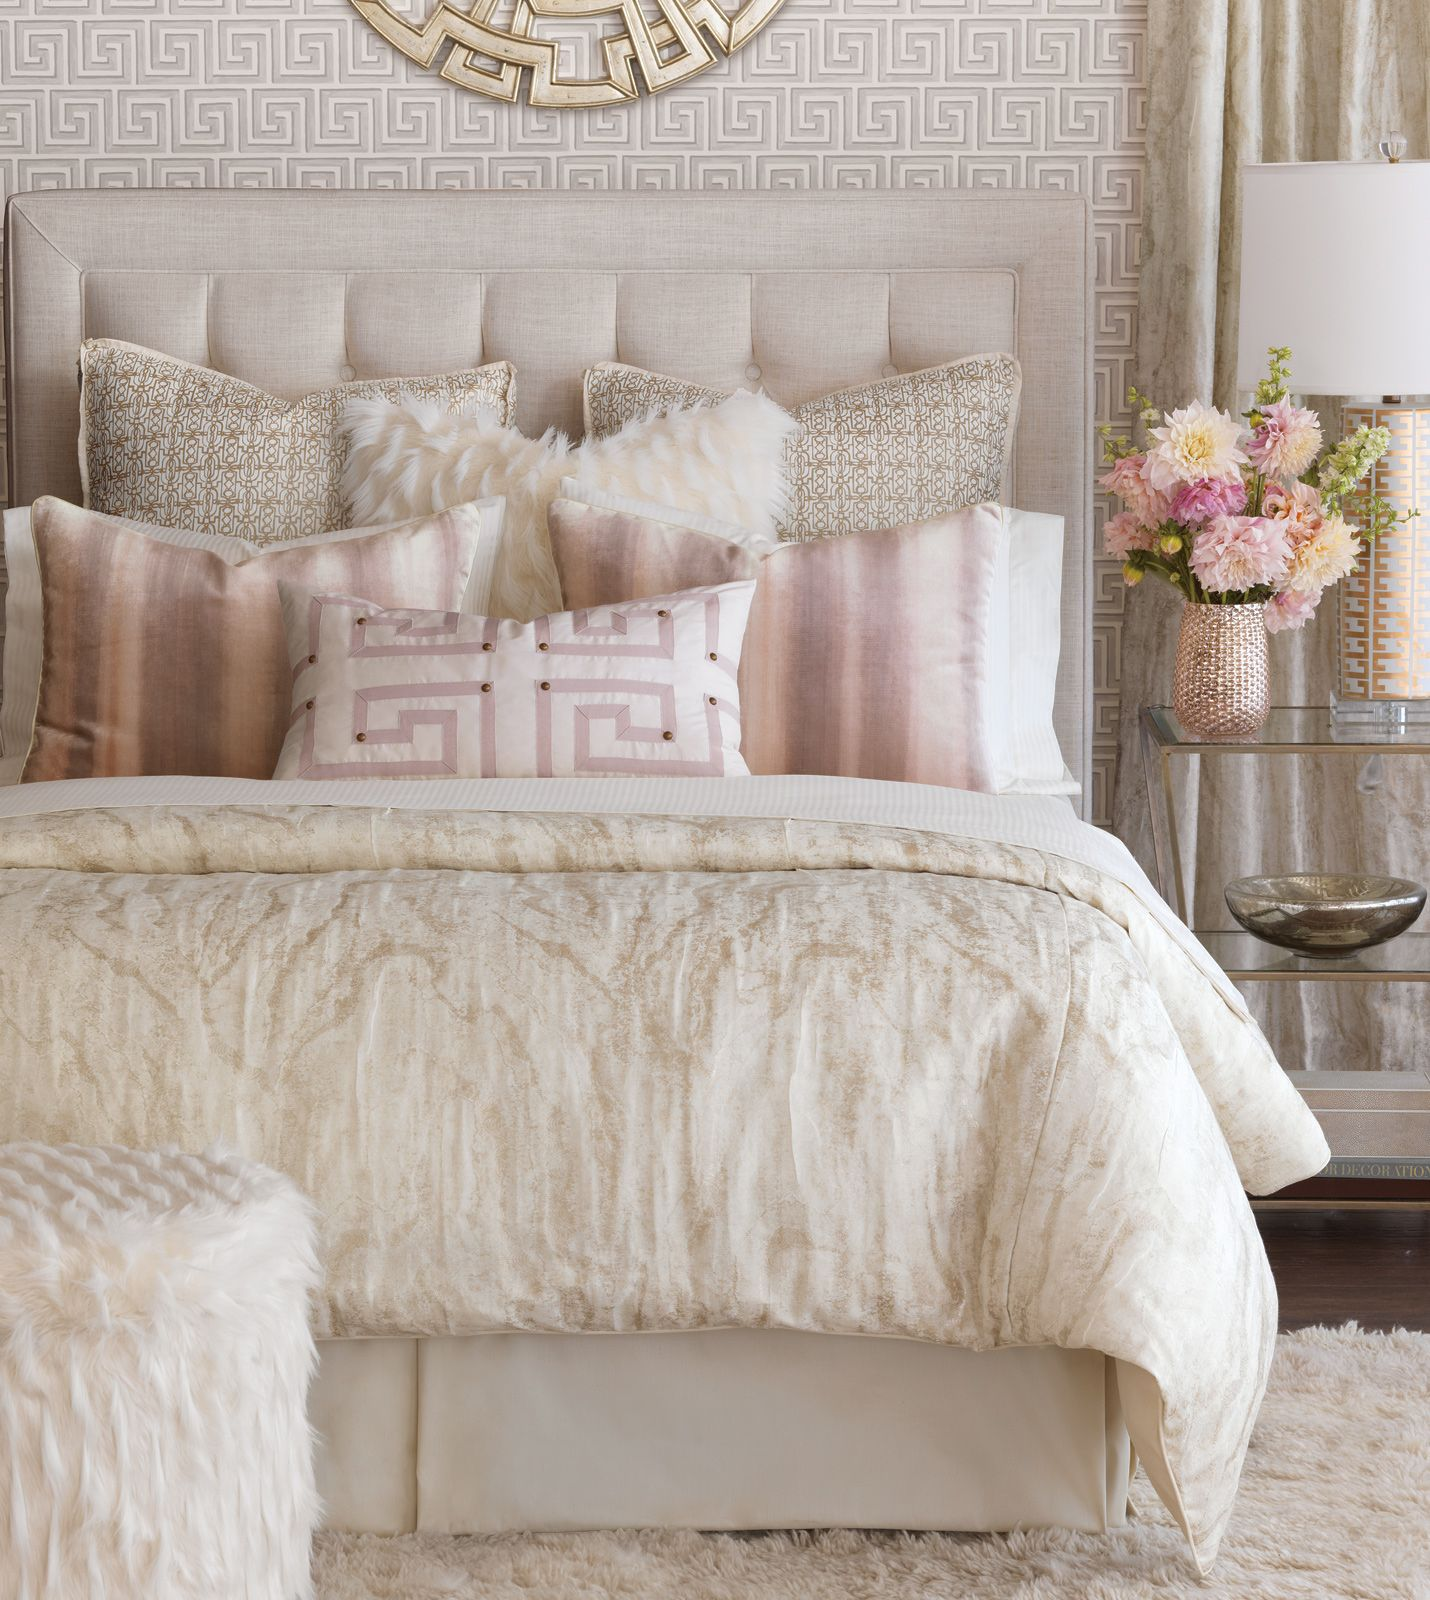 embroidered rouge today bath free overstock habitat soft maison product bedding rimbaud urban callie comforter pintuck set piece pink with shipping detailing